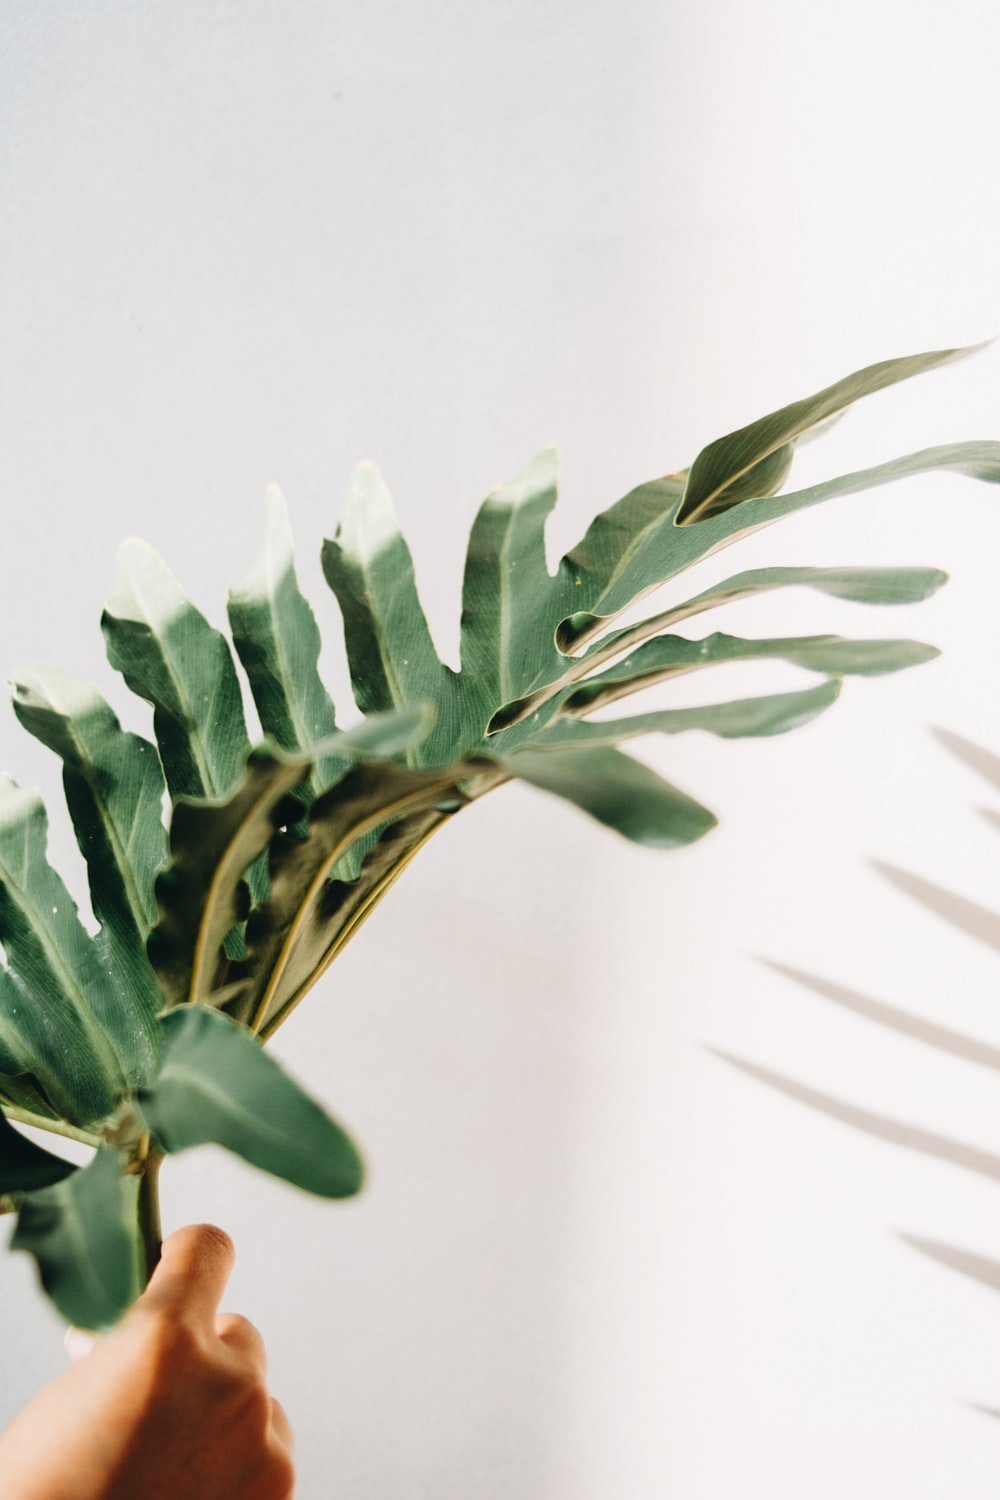 green-leafed plant ]